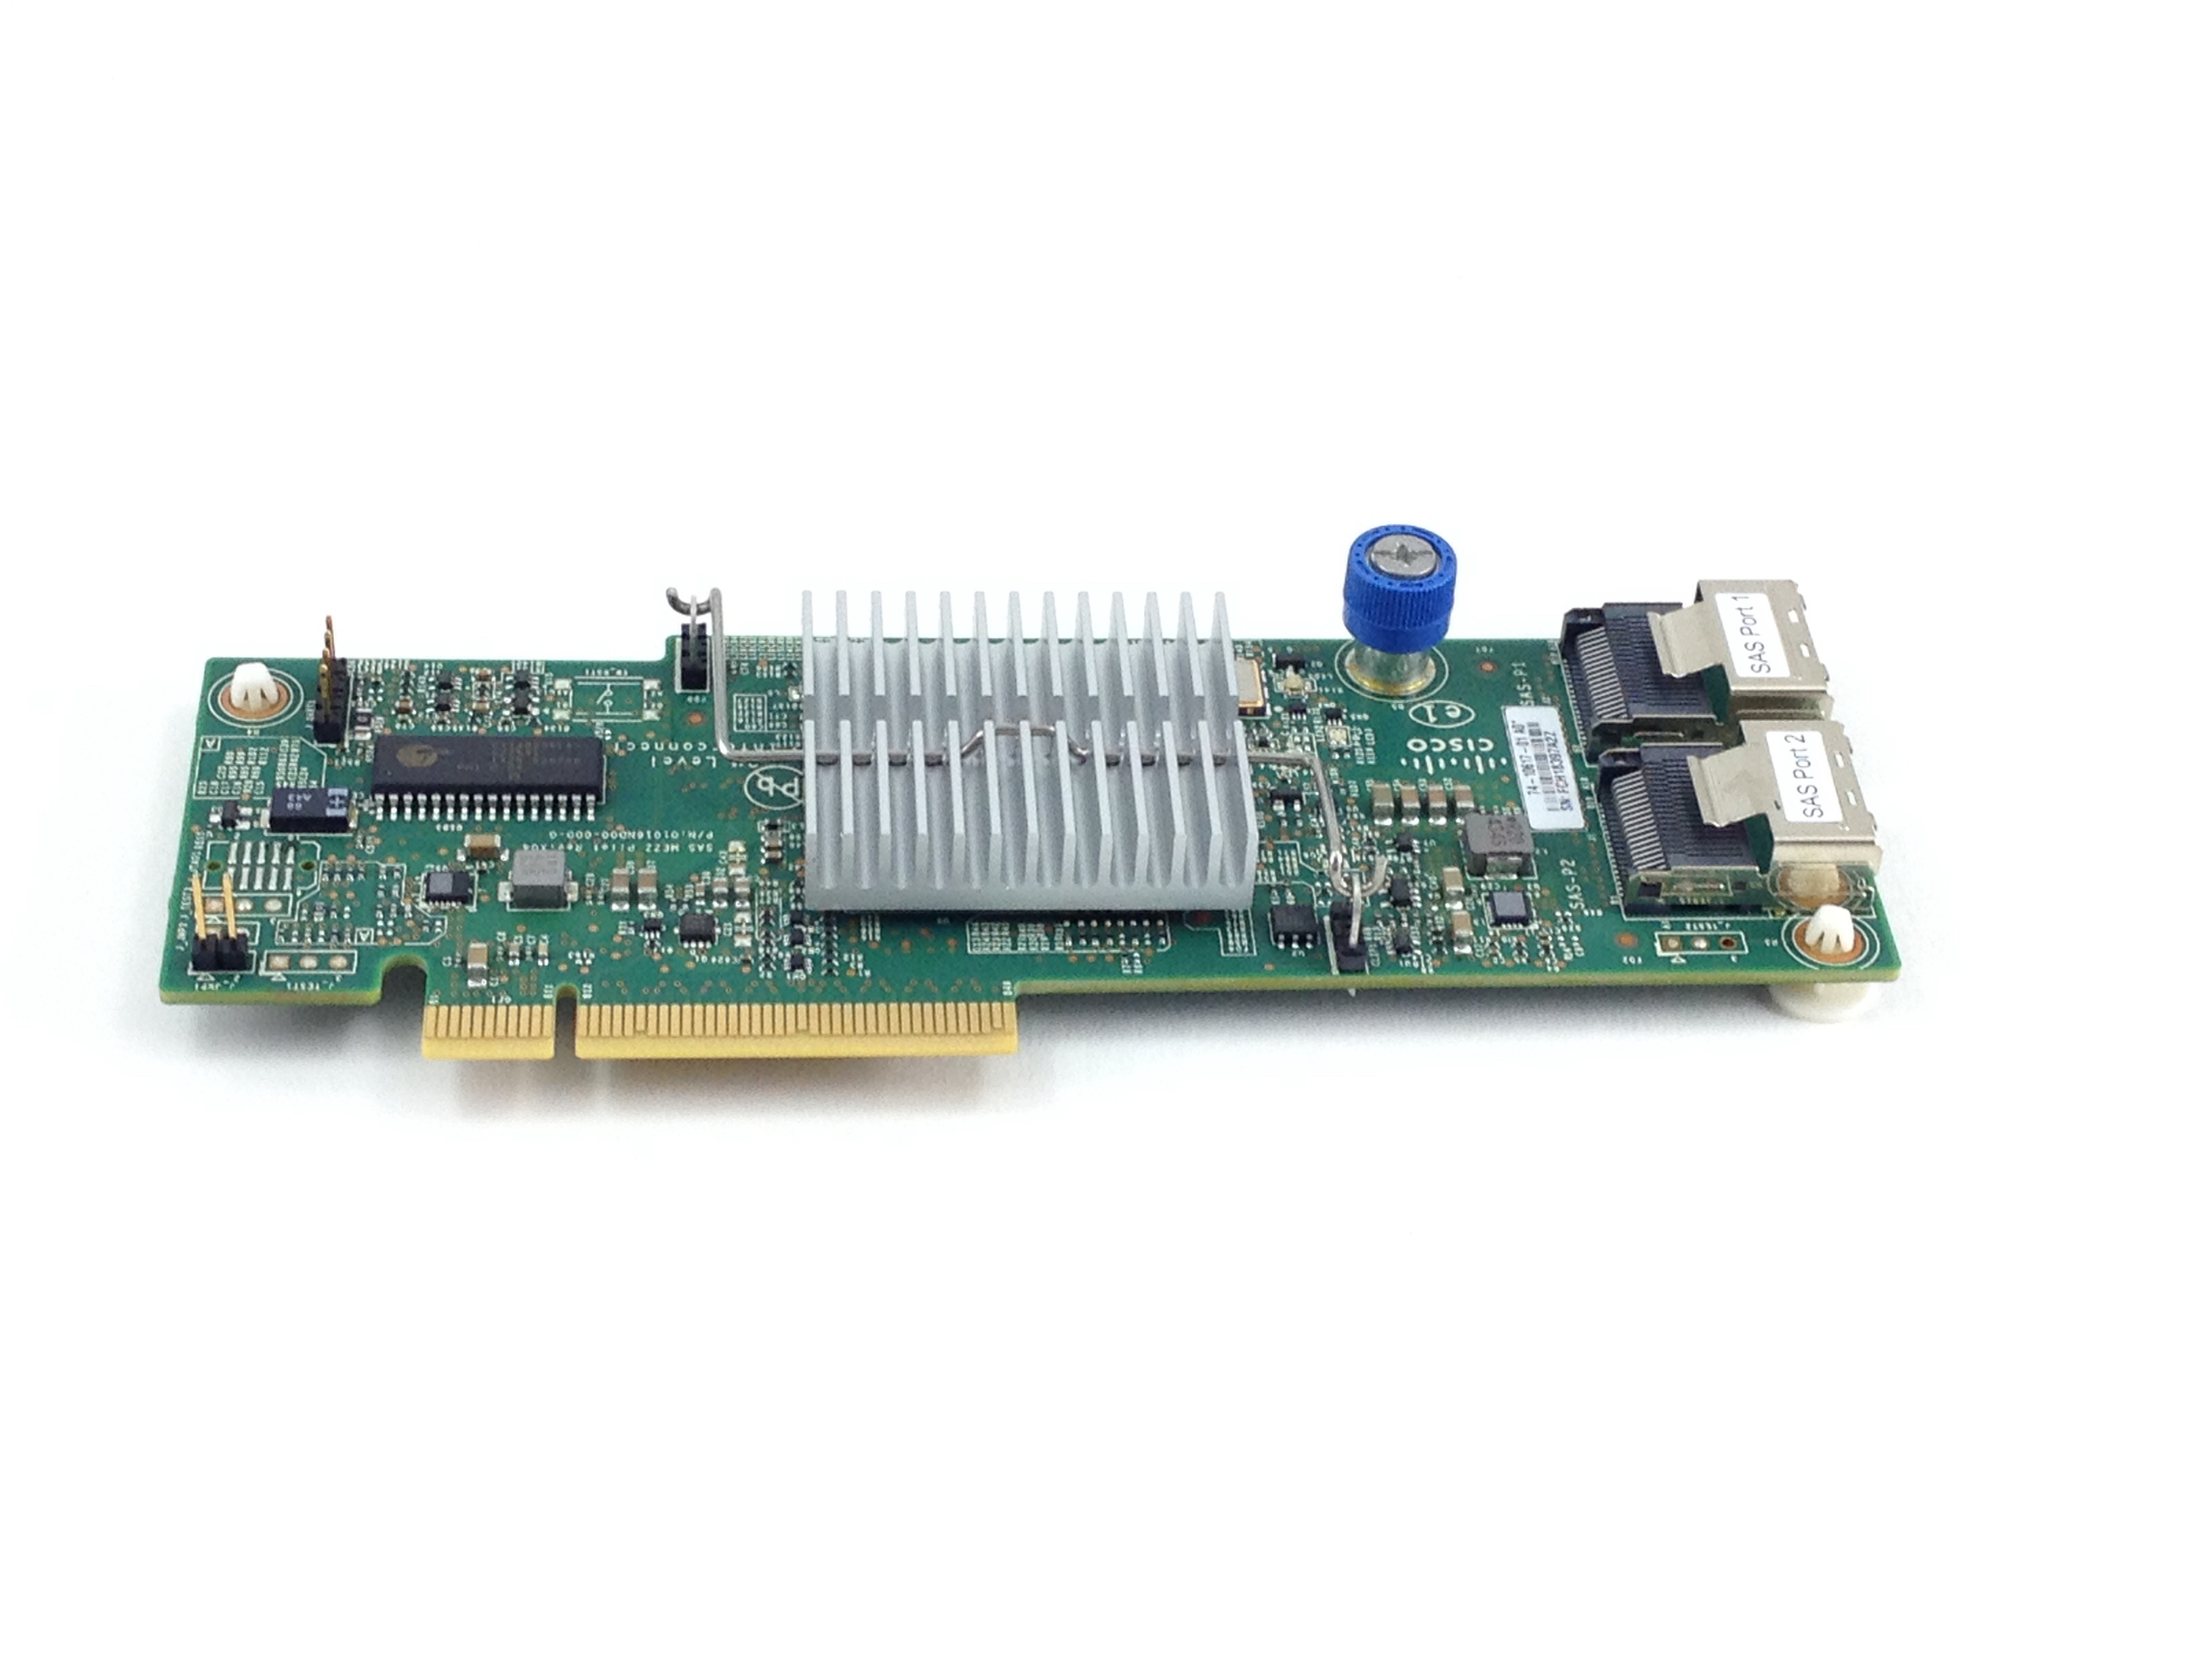 CISCO 2008M-8I DUAL PORT SAS CONTROLLER CARD PLUG-IN MODULE (74-10617-01)